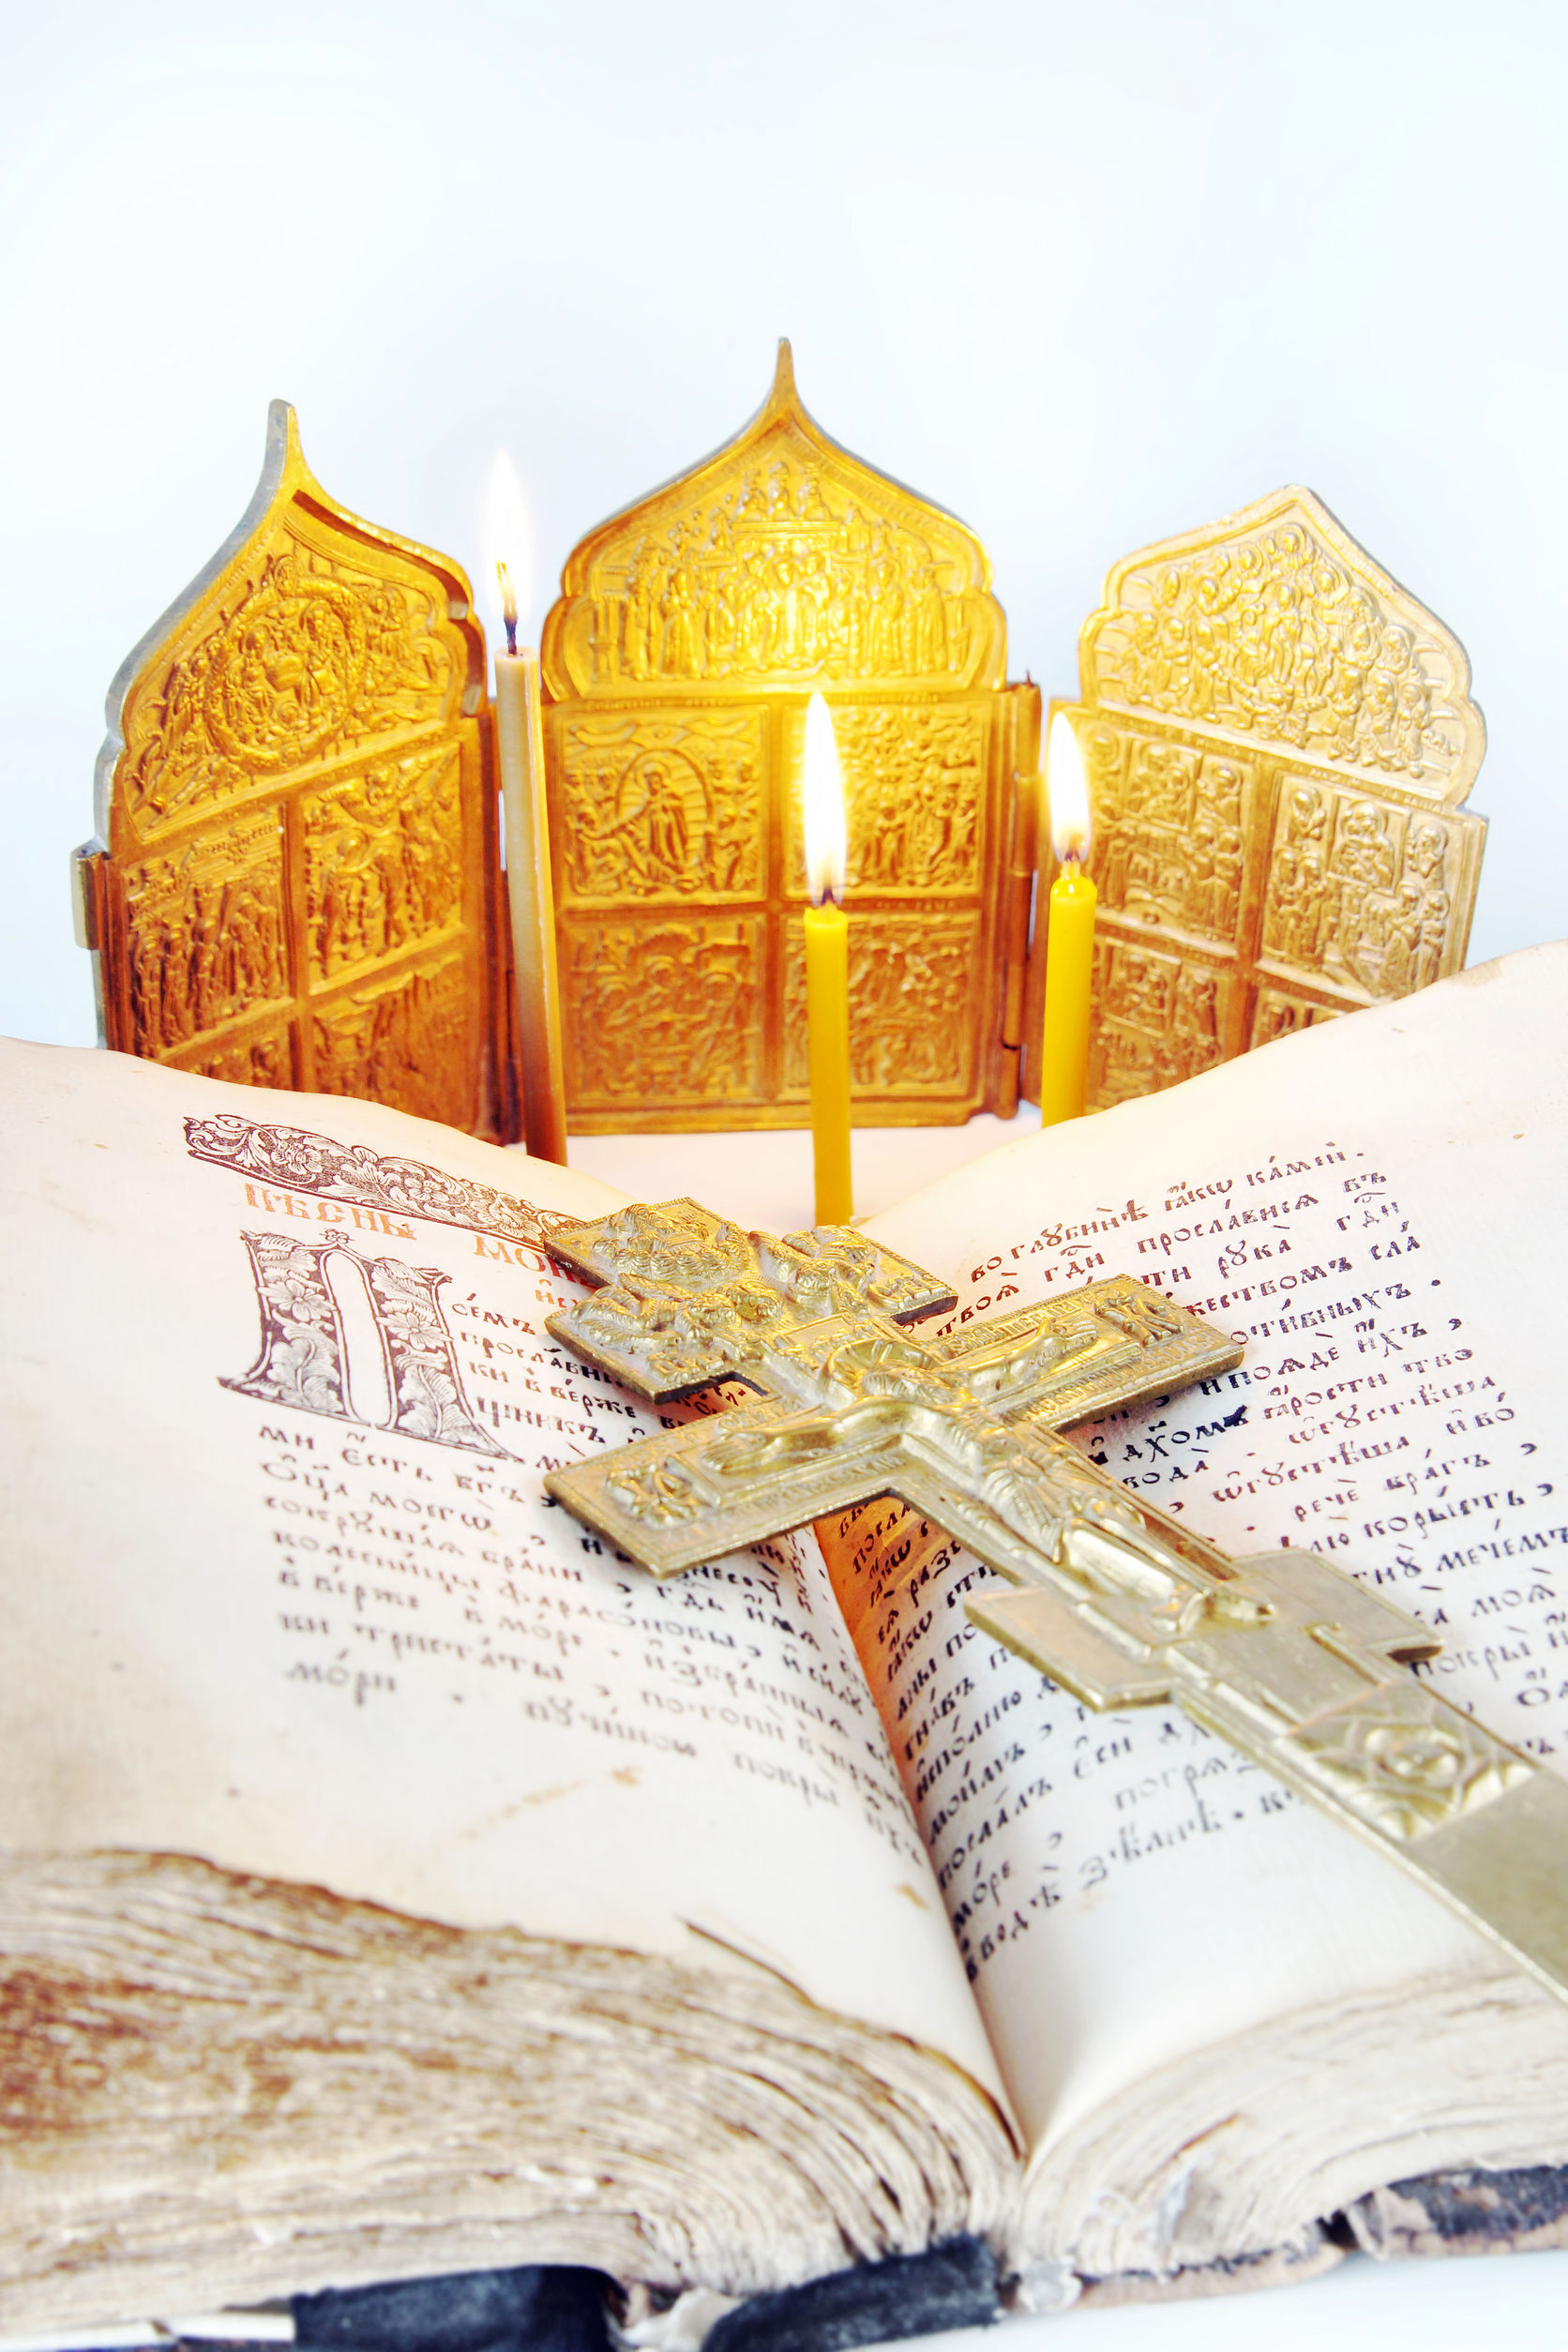 39083002 - orthodox christian still life with an open ancient bible and metal cross on light background